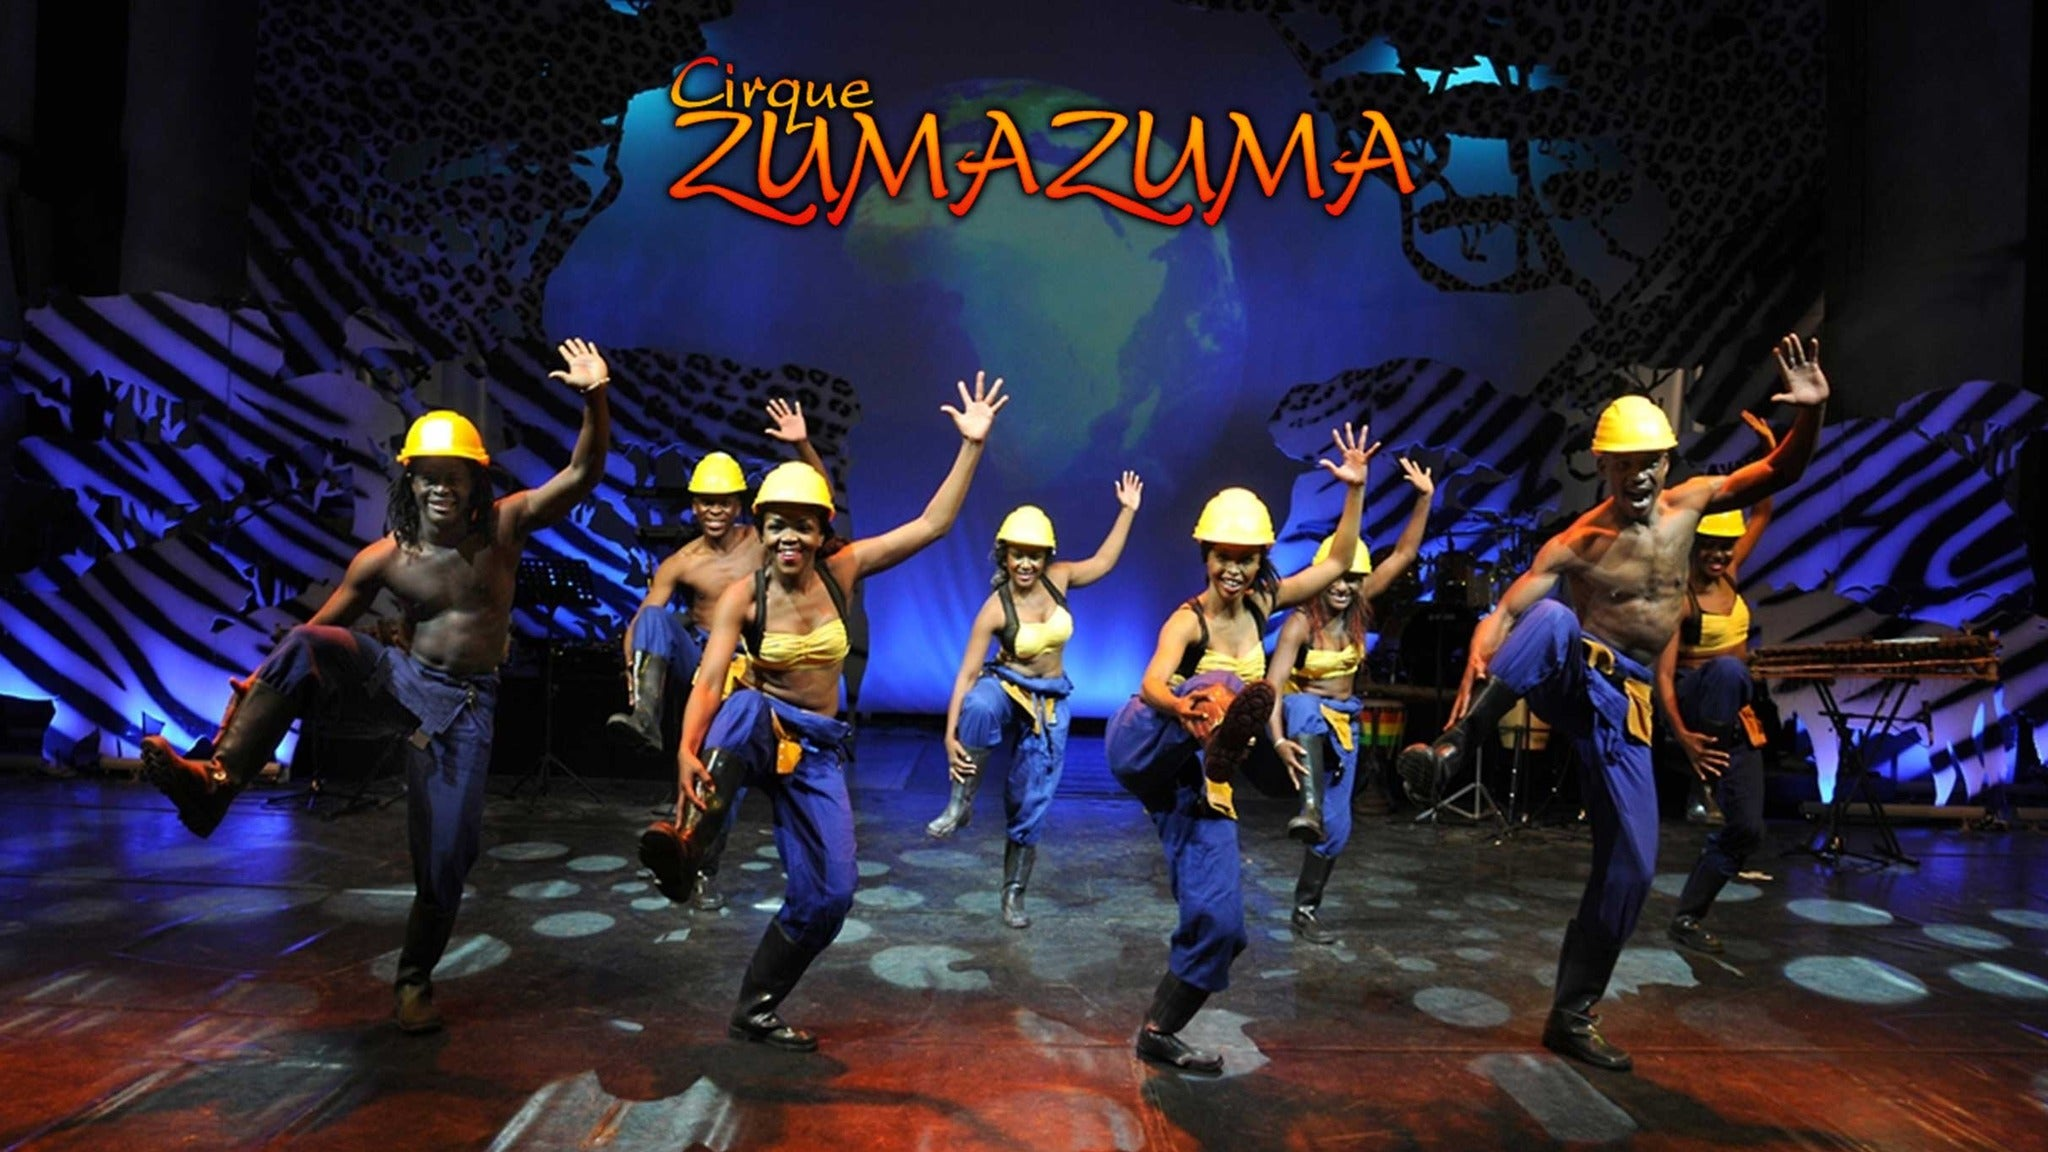 Cirque Zuma Zuma at Cheyenne Civic Center